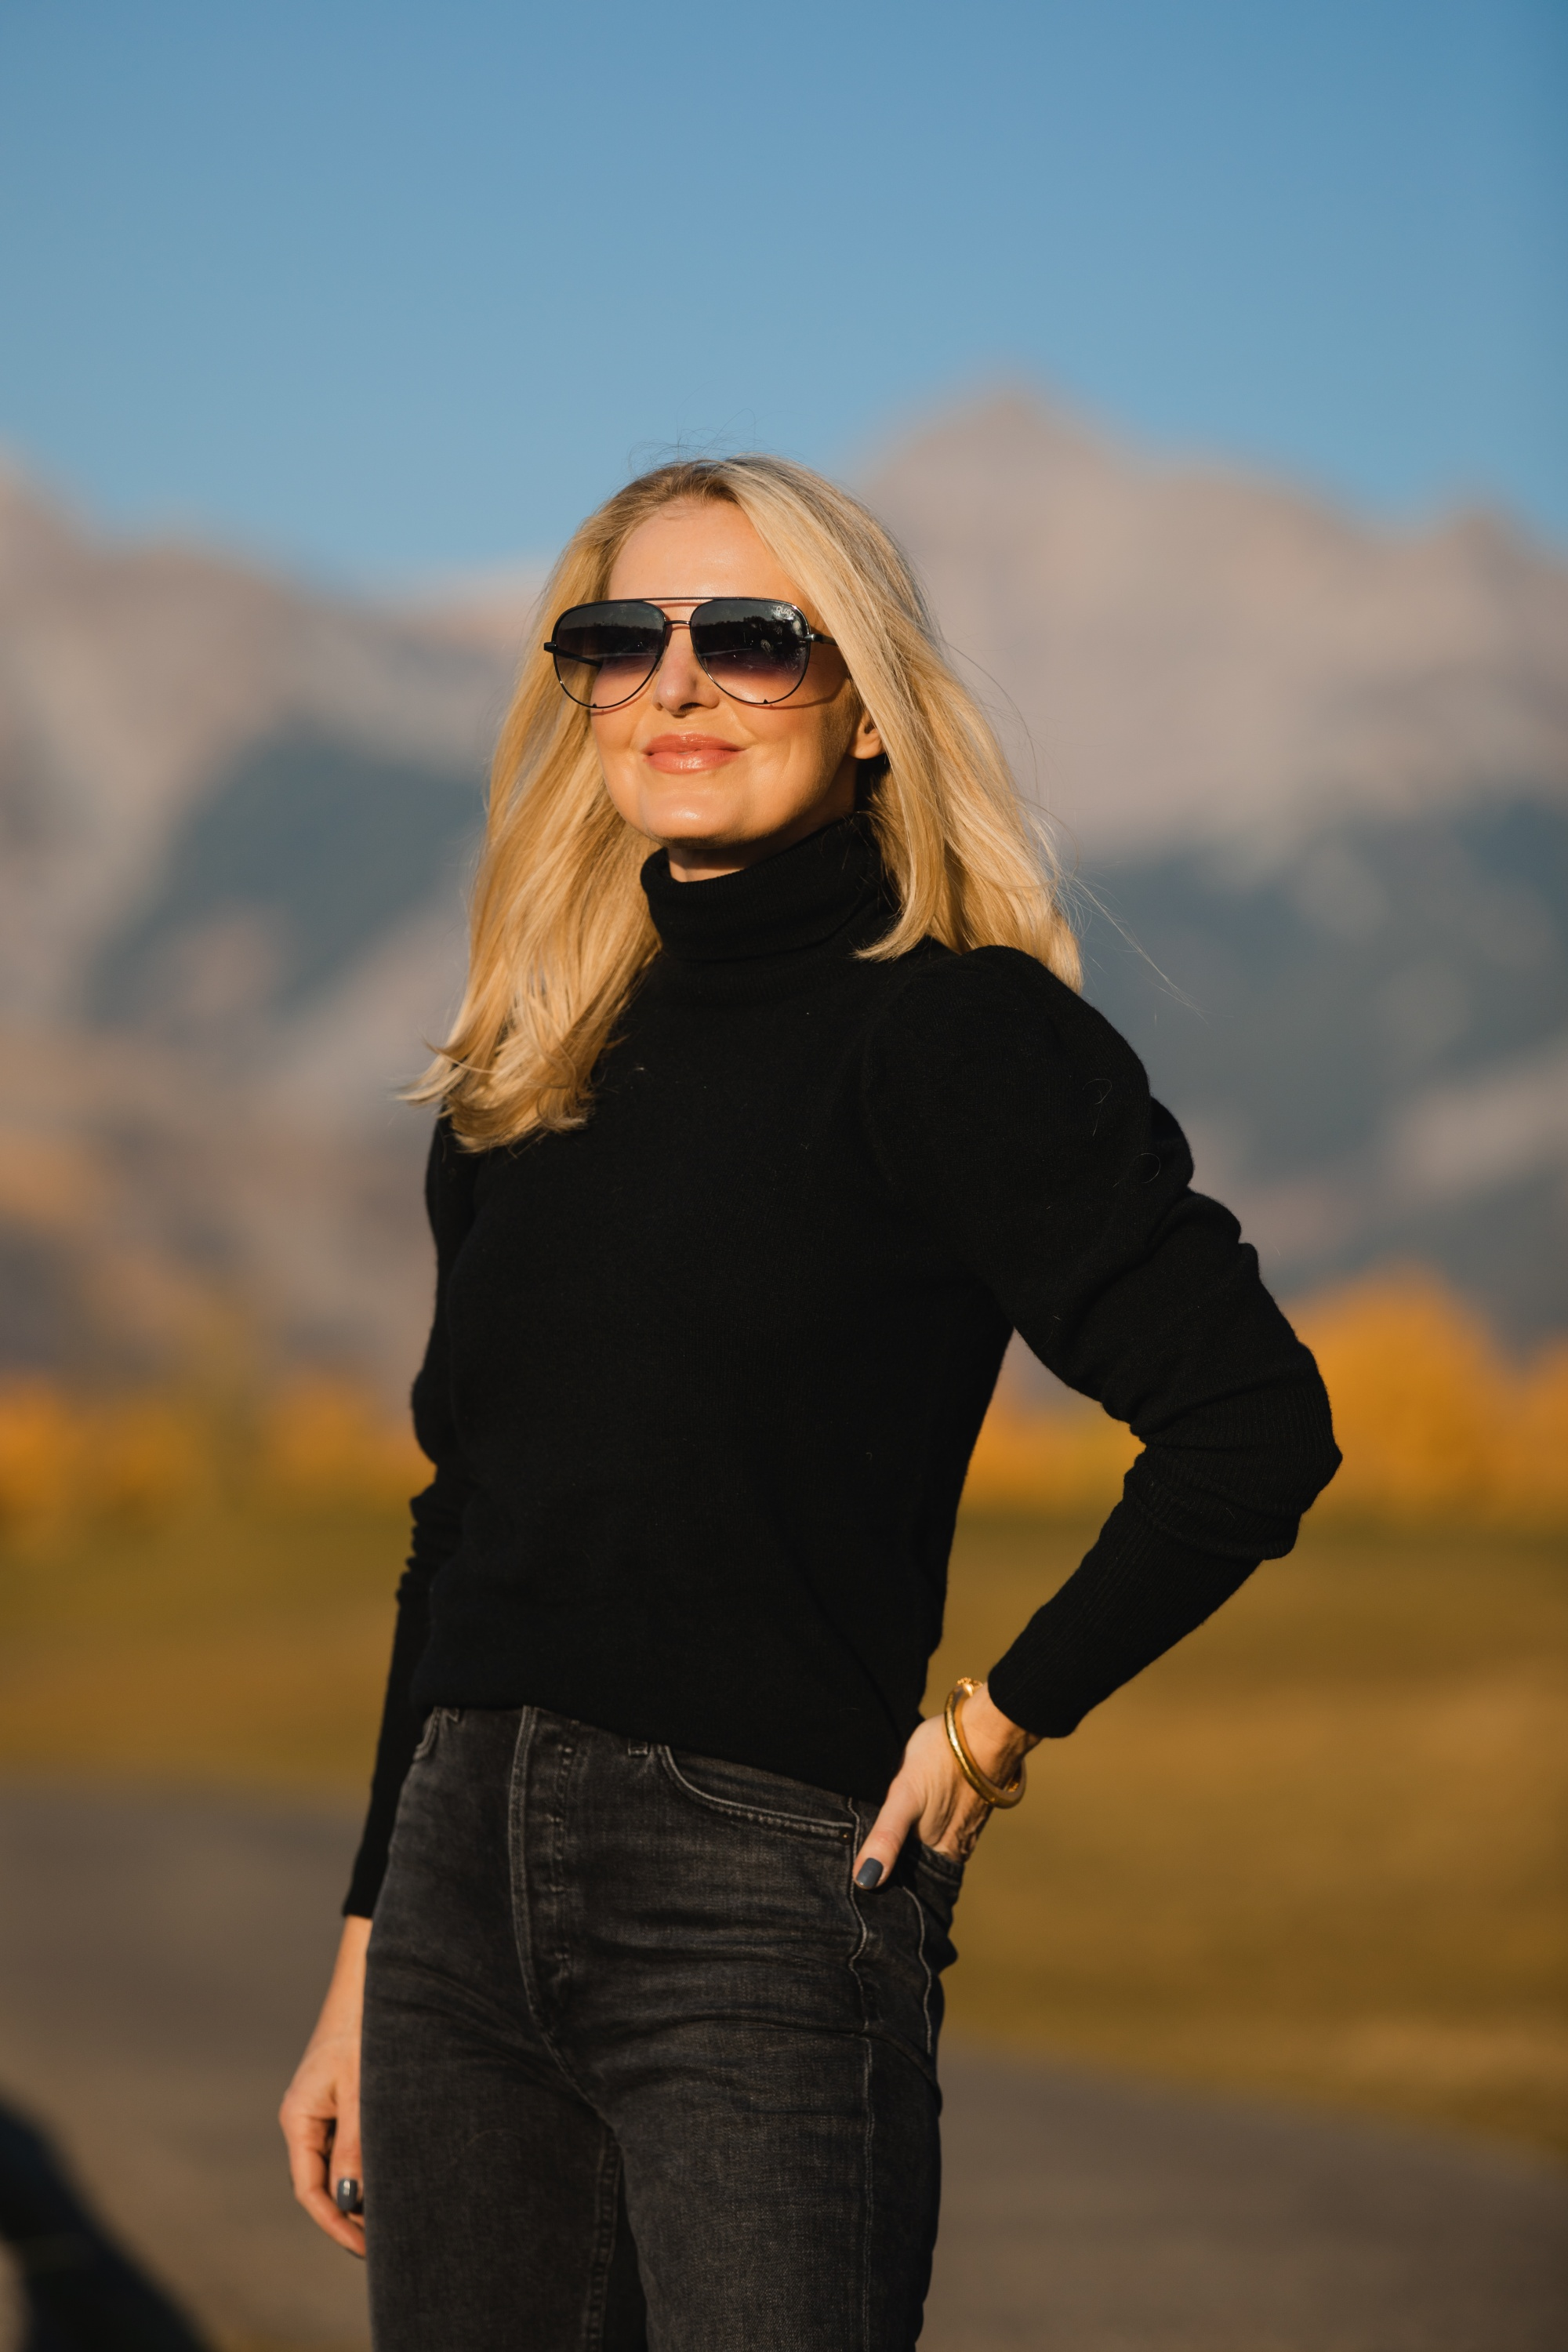 How To Wear A Cargo Jacket, Erin Busbee of Busbee Style wearing a black turtleneck puff sleeve cashmere sweater by Aqua, gray wash Nico slim fit jeans by Agolde, QUAY sunglasses, and Alexander Wang cutout booties in Telluride, Colorado